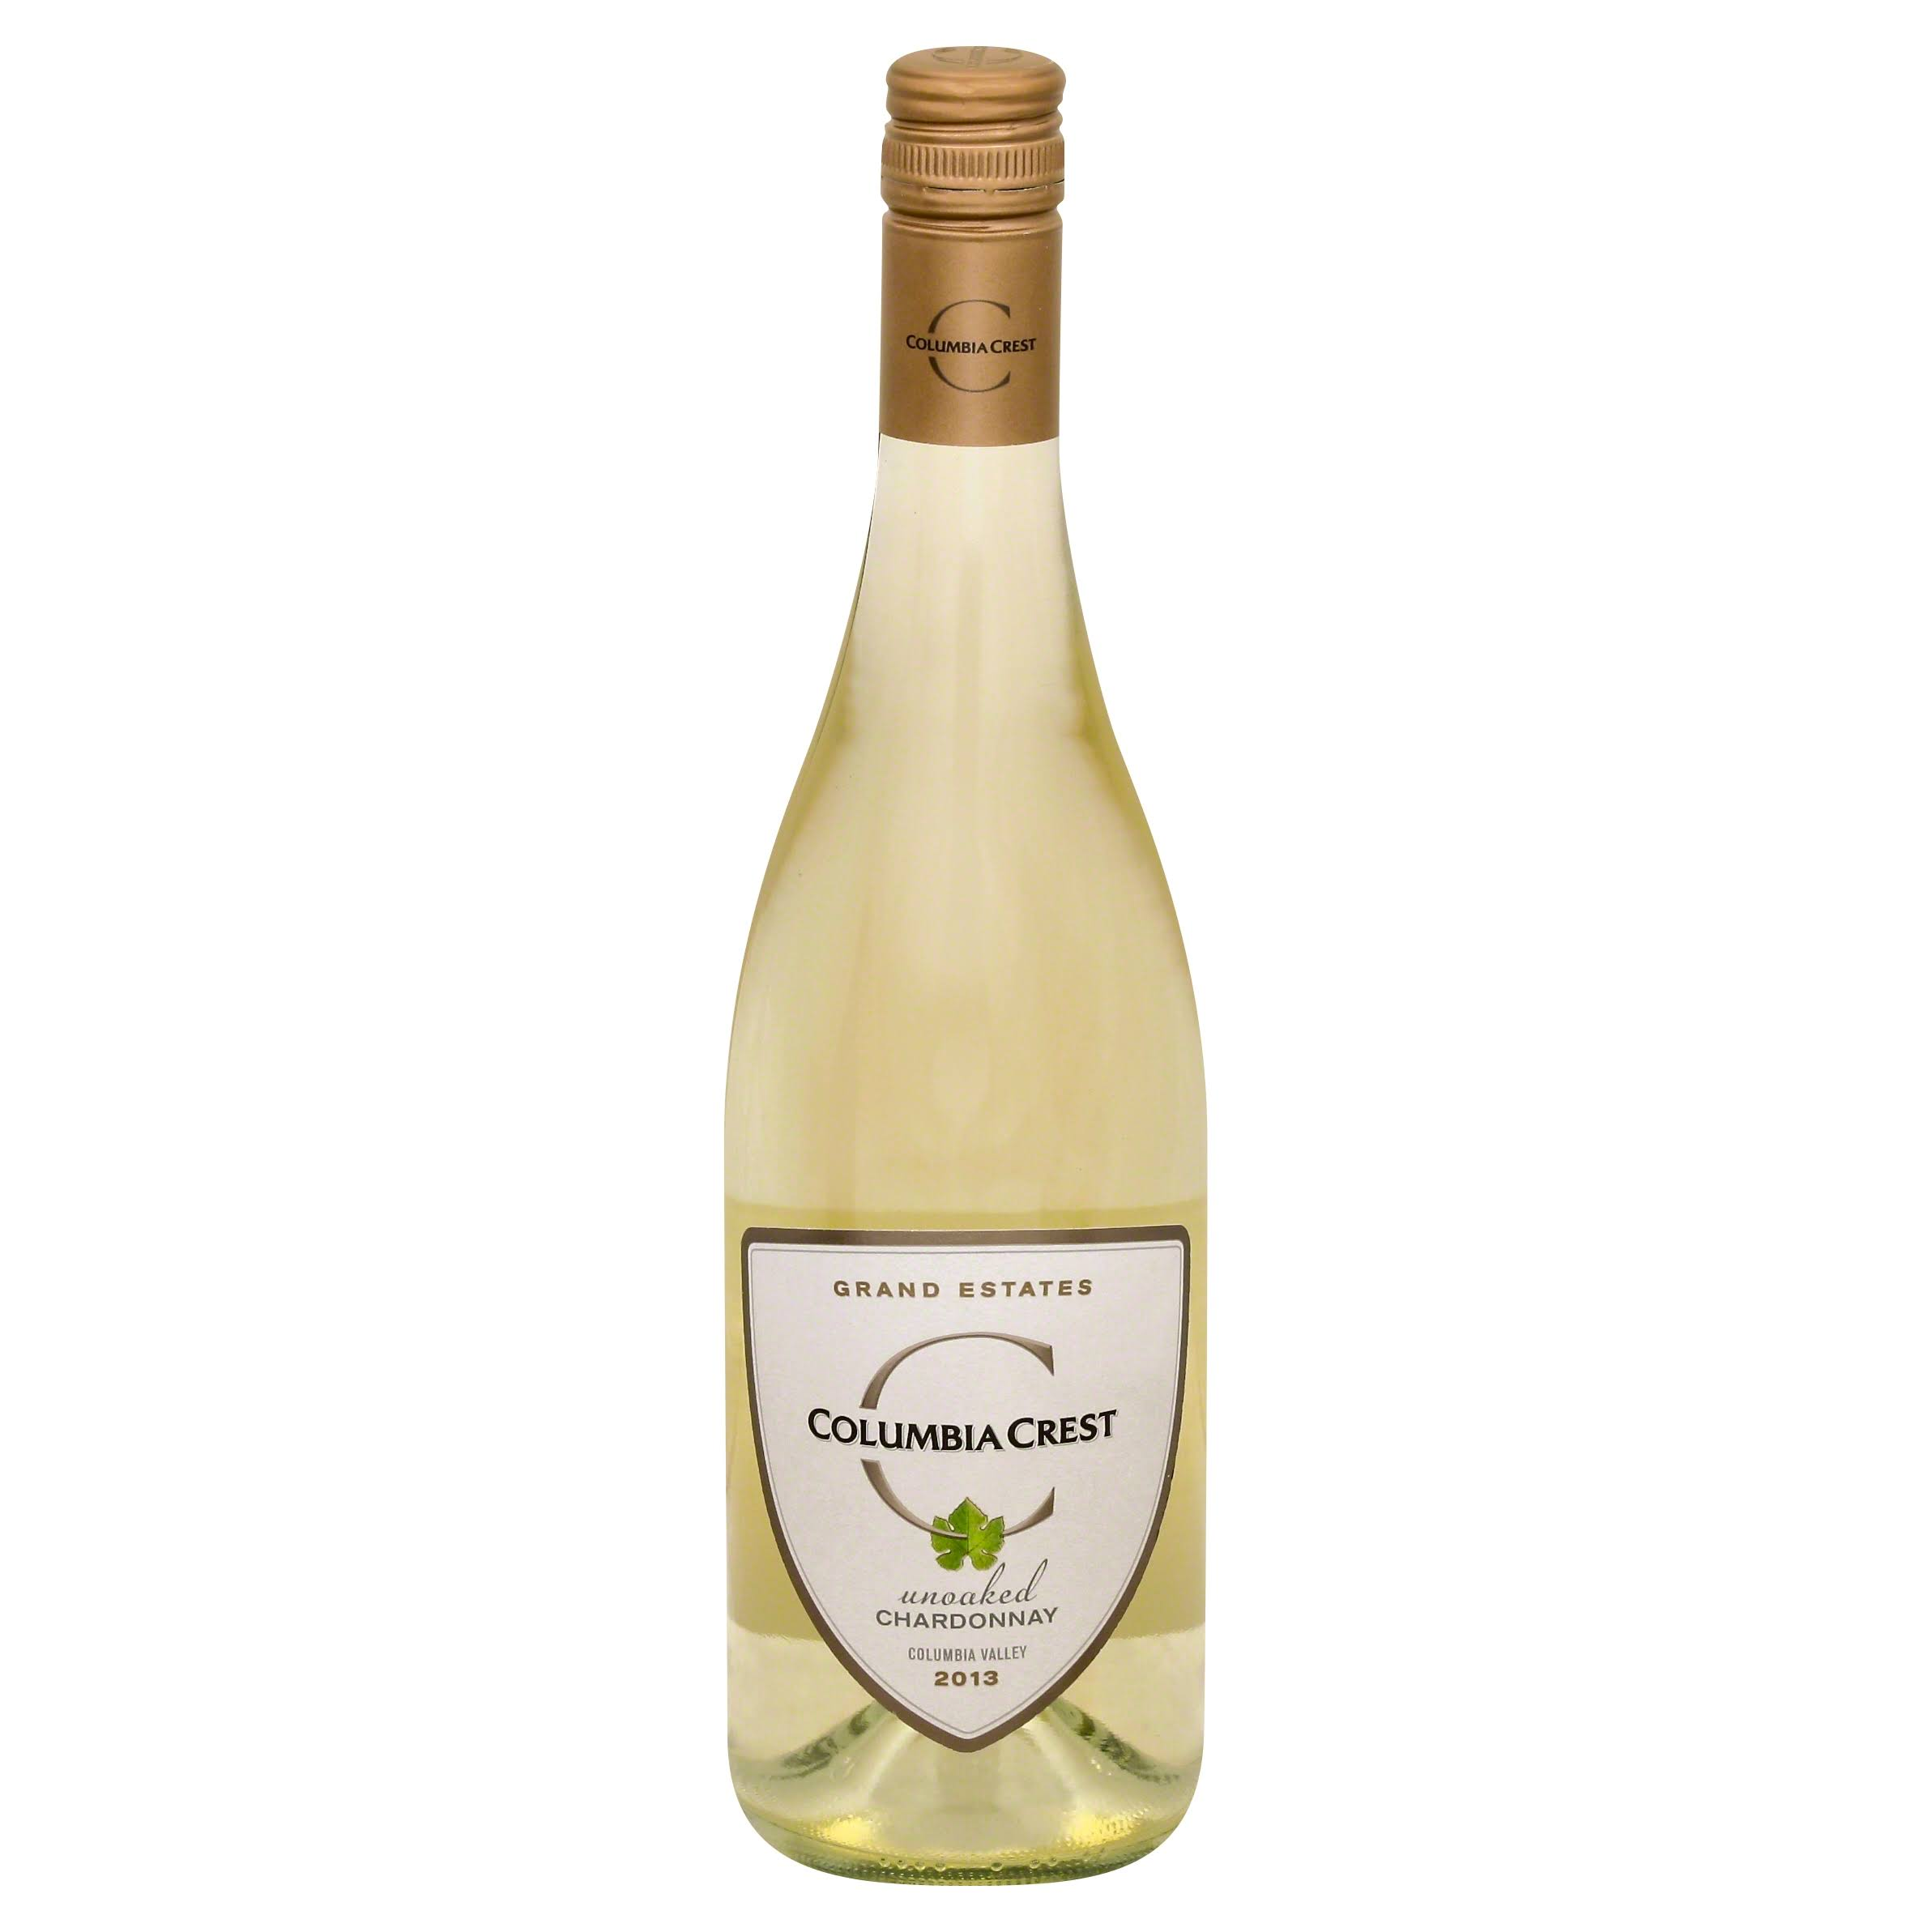 Columbia Crest Chardonnay, Columbia Valley (Vintage Varies) - 750 ml bottle